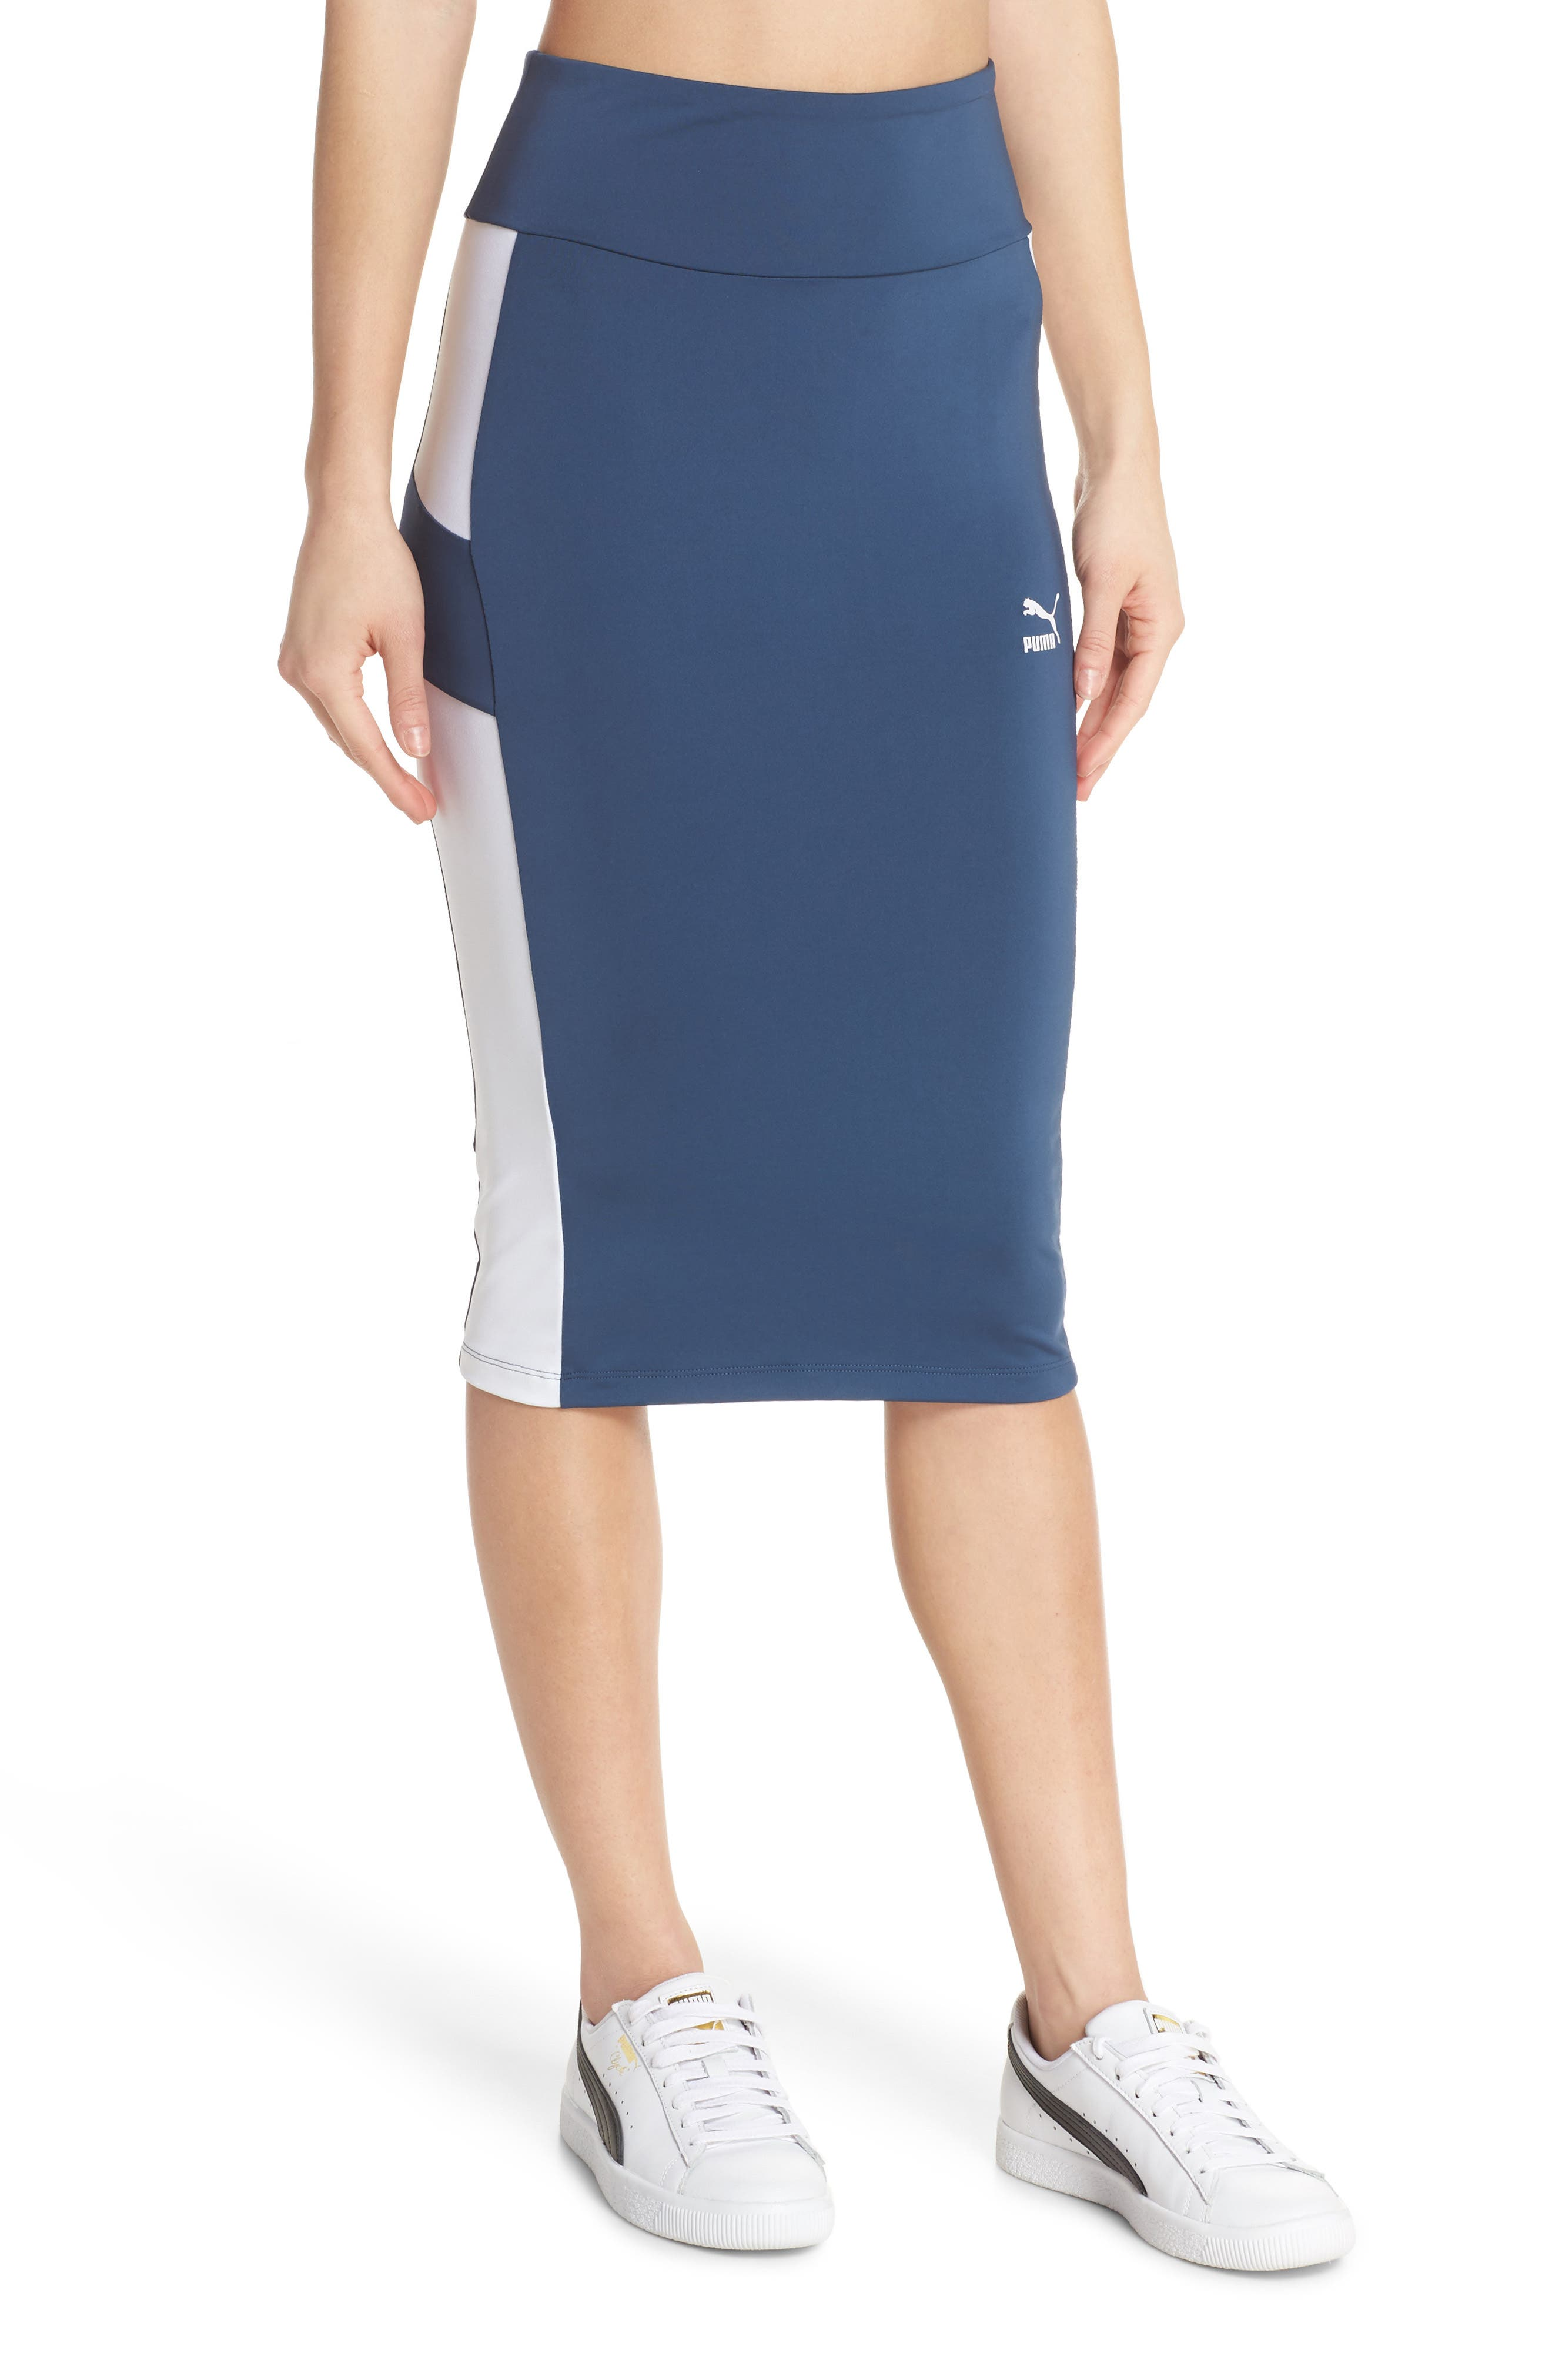 Archive Logo Pencil Skirt,                             Main thumbnail 1, color,                             403